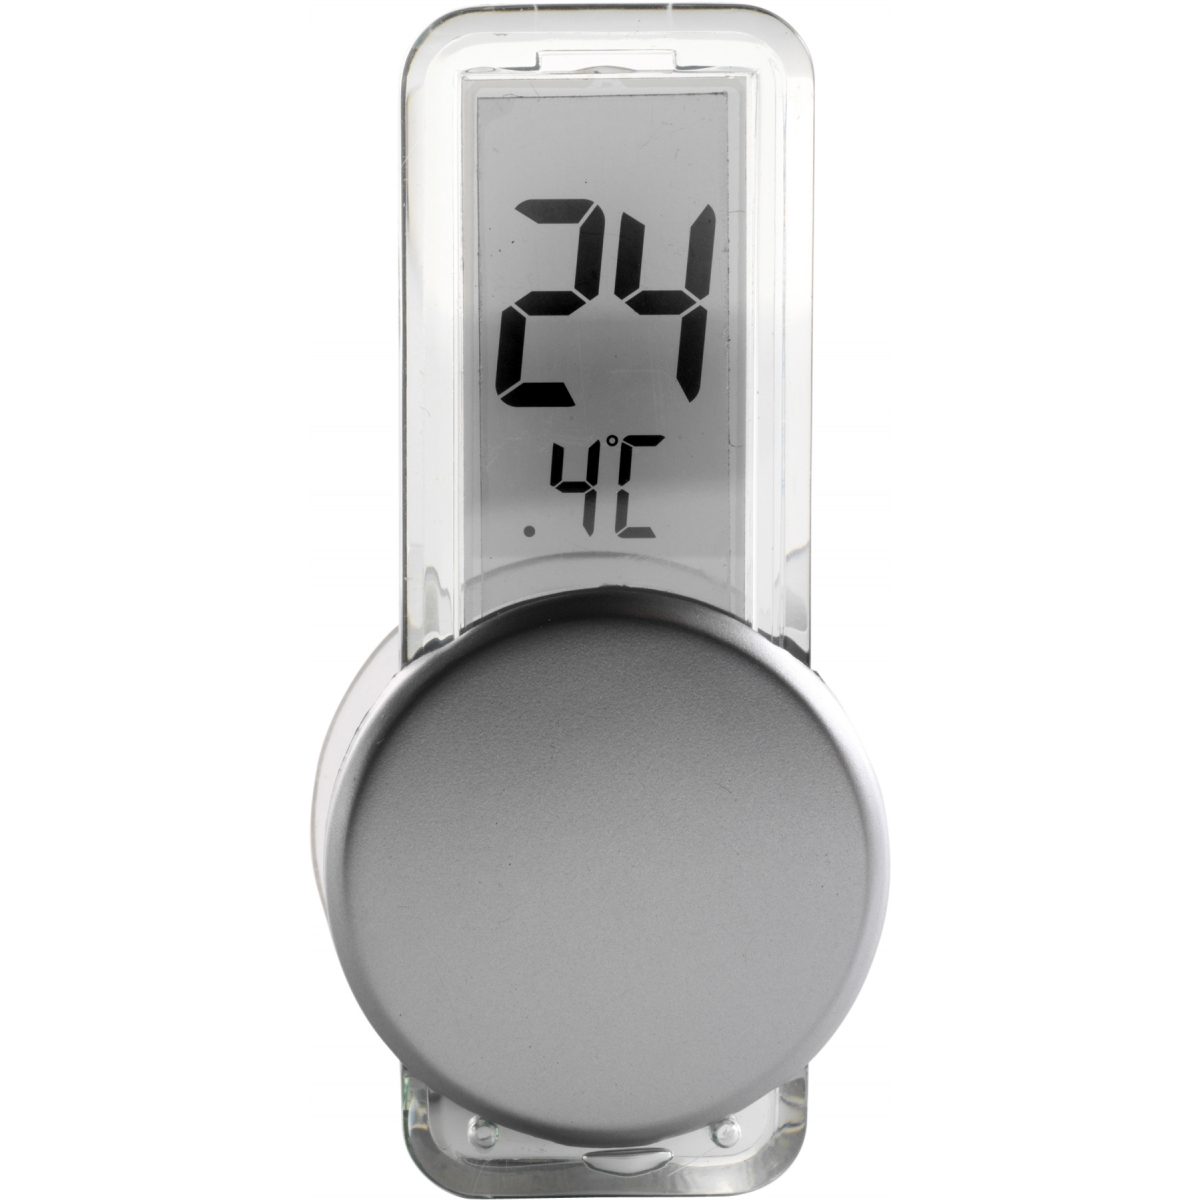 Thermometer | Digitaal | Binnen thermometer